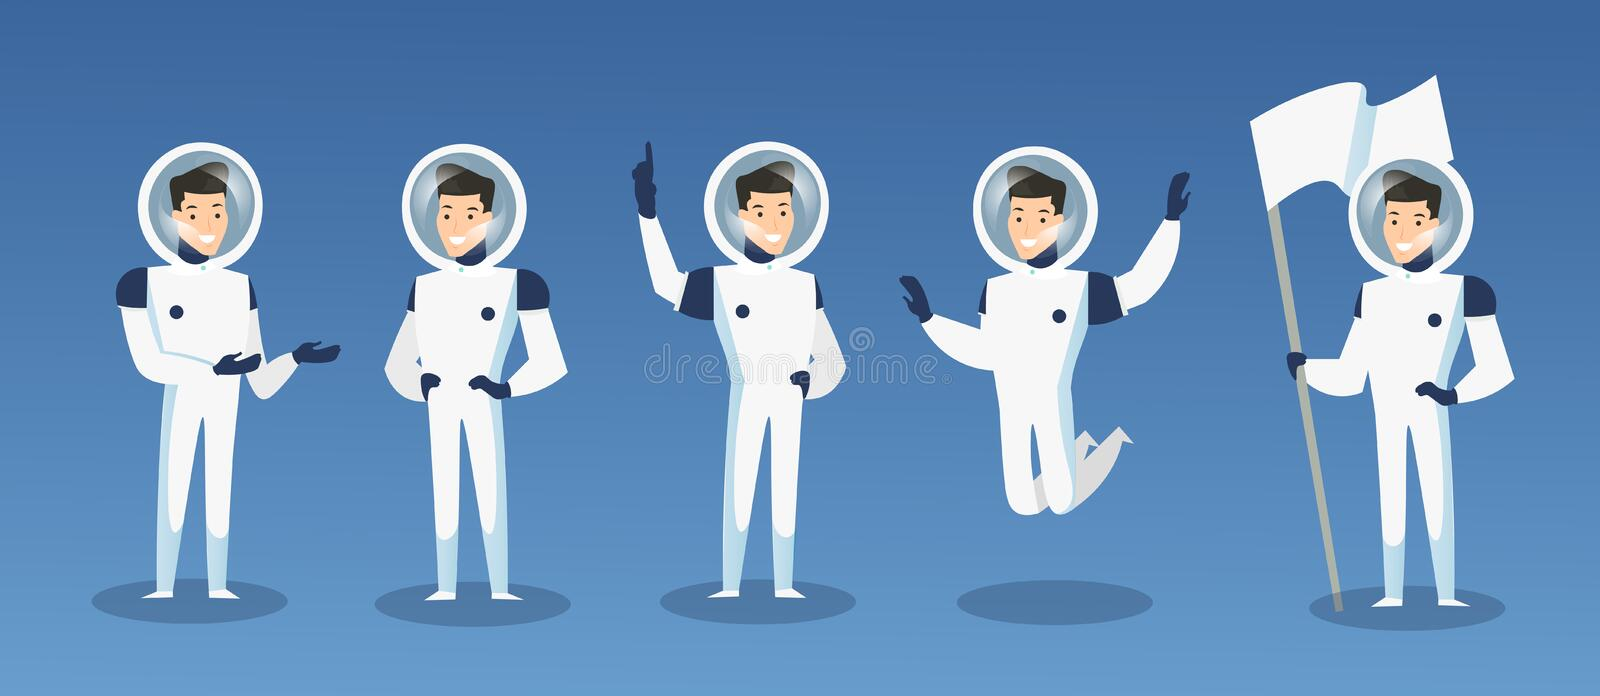 Vector illustration set of cartoon astronauts, spaceman in different positions. Moving cosmonaut in space costume, man vector illustration